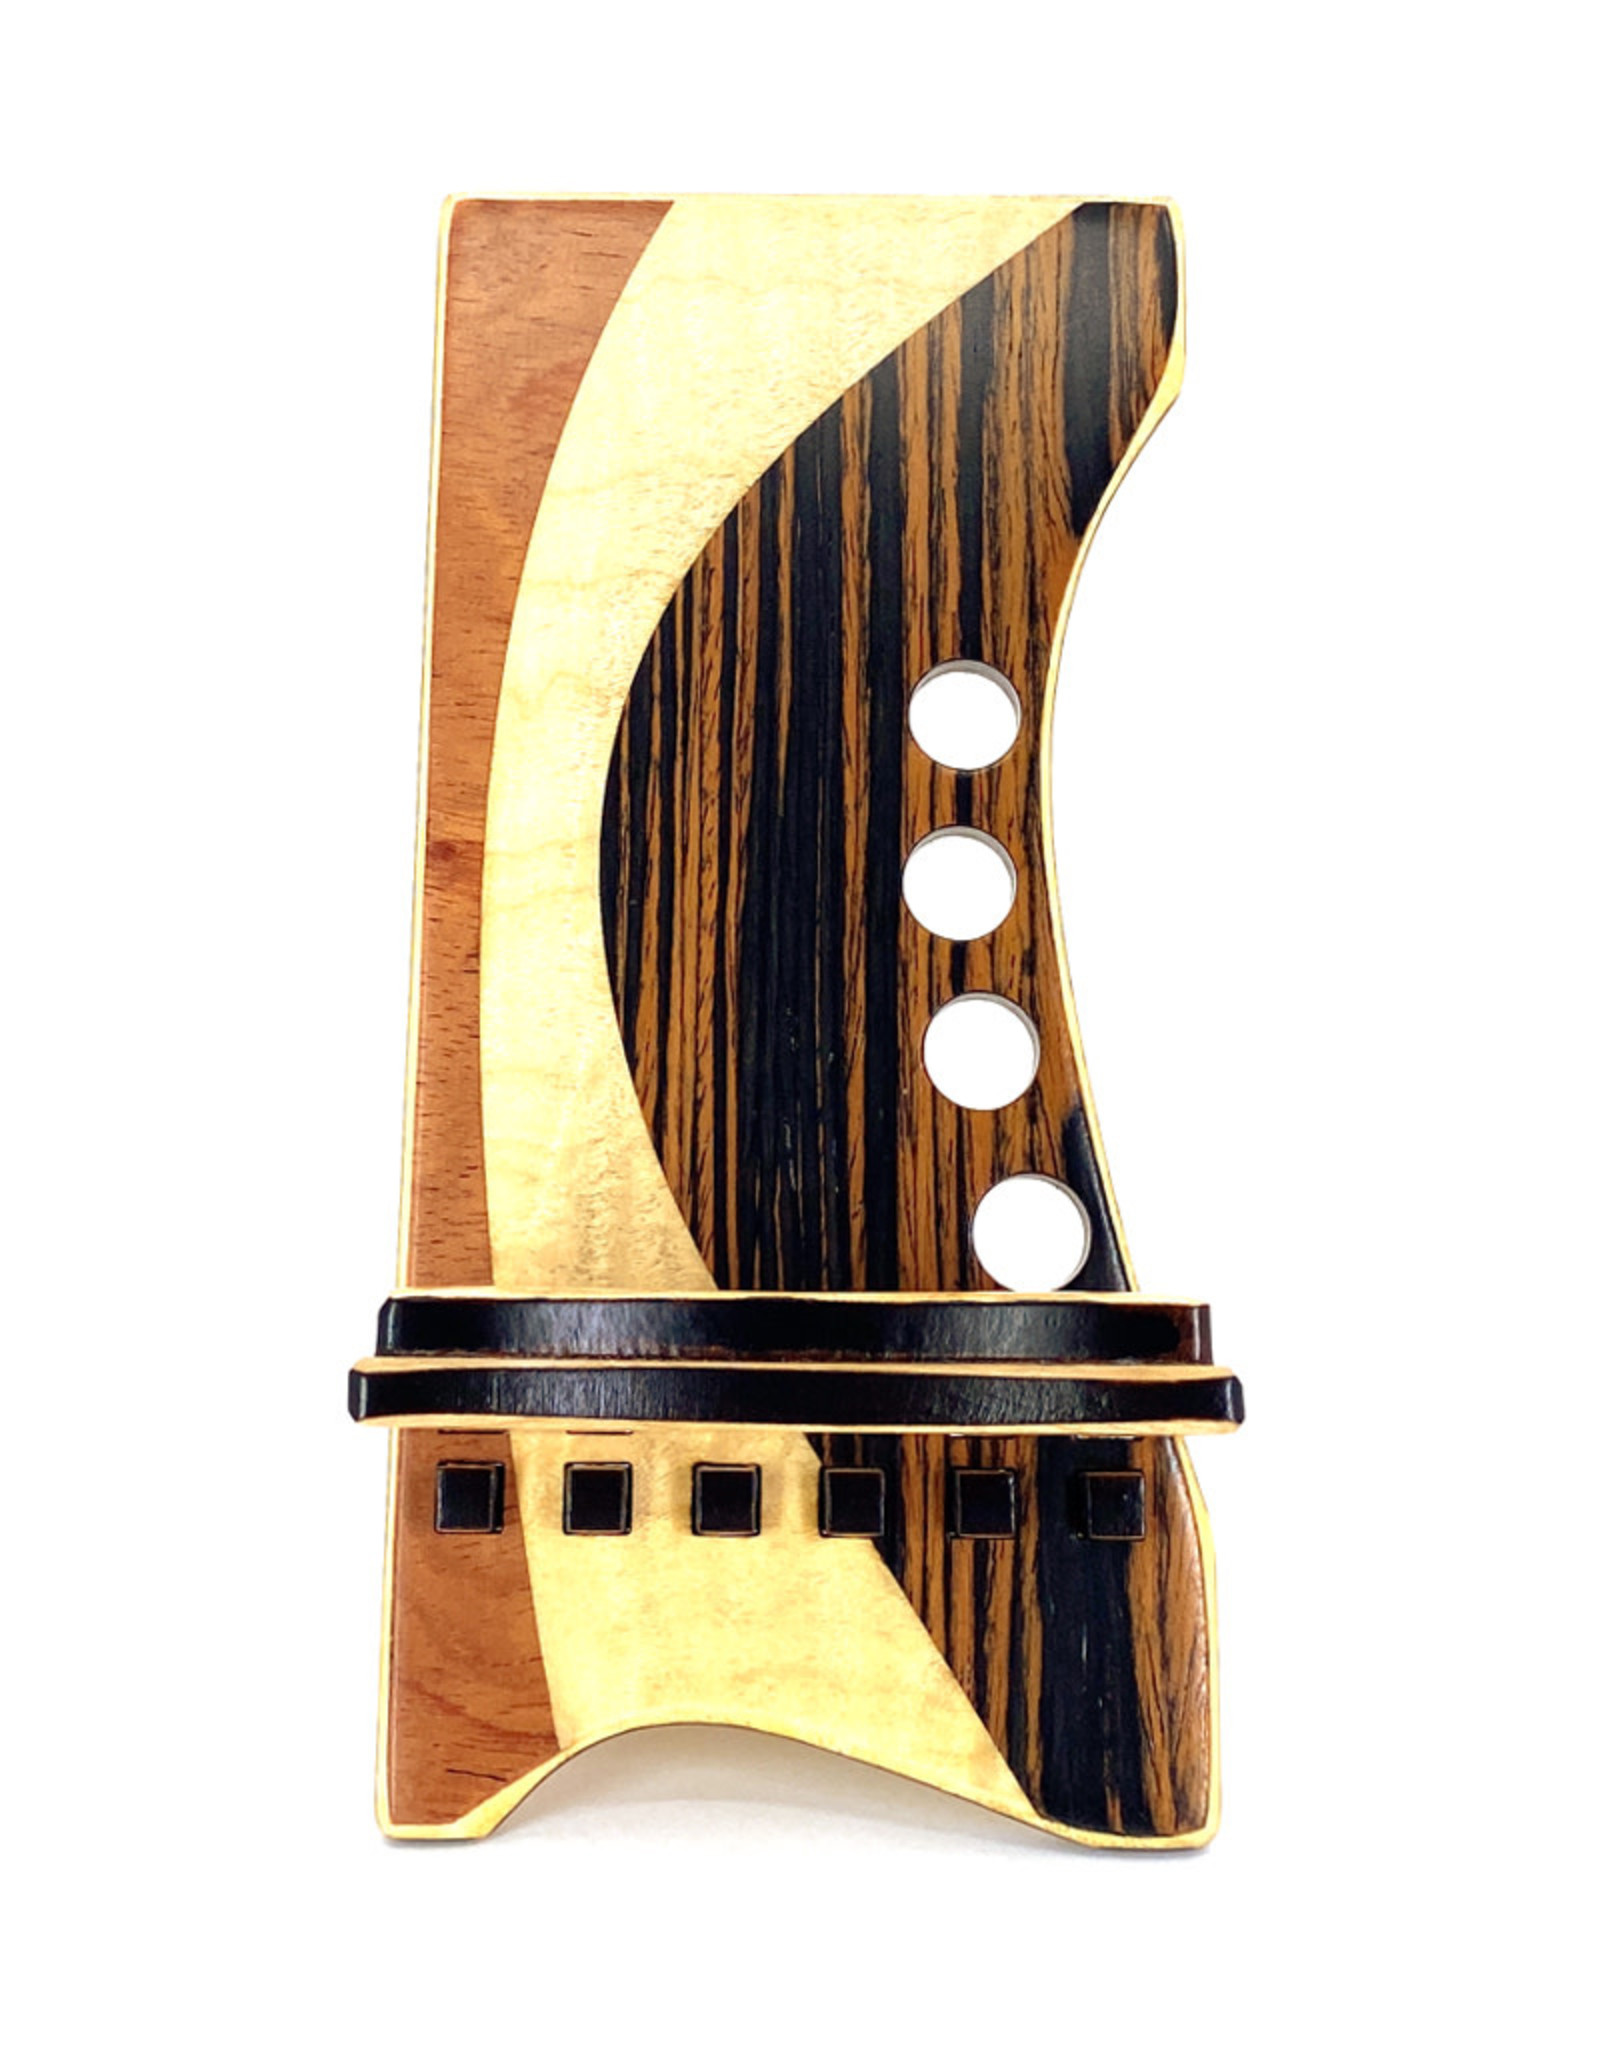 LOST ART WOODWORKS NATURAL WOOD XV MARQUETRY INLAID PHONE STAND